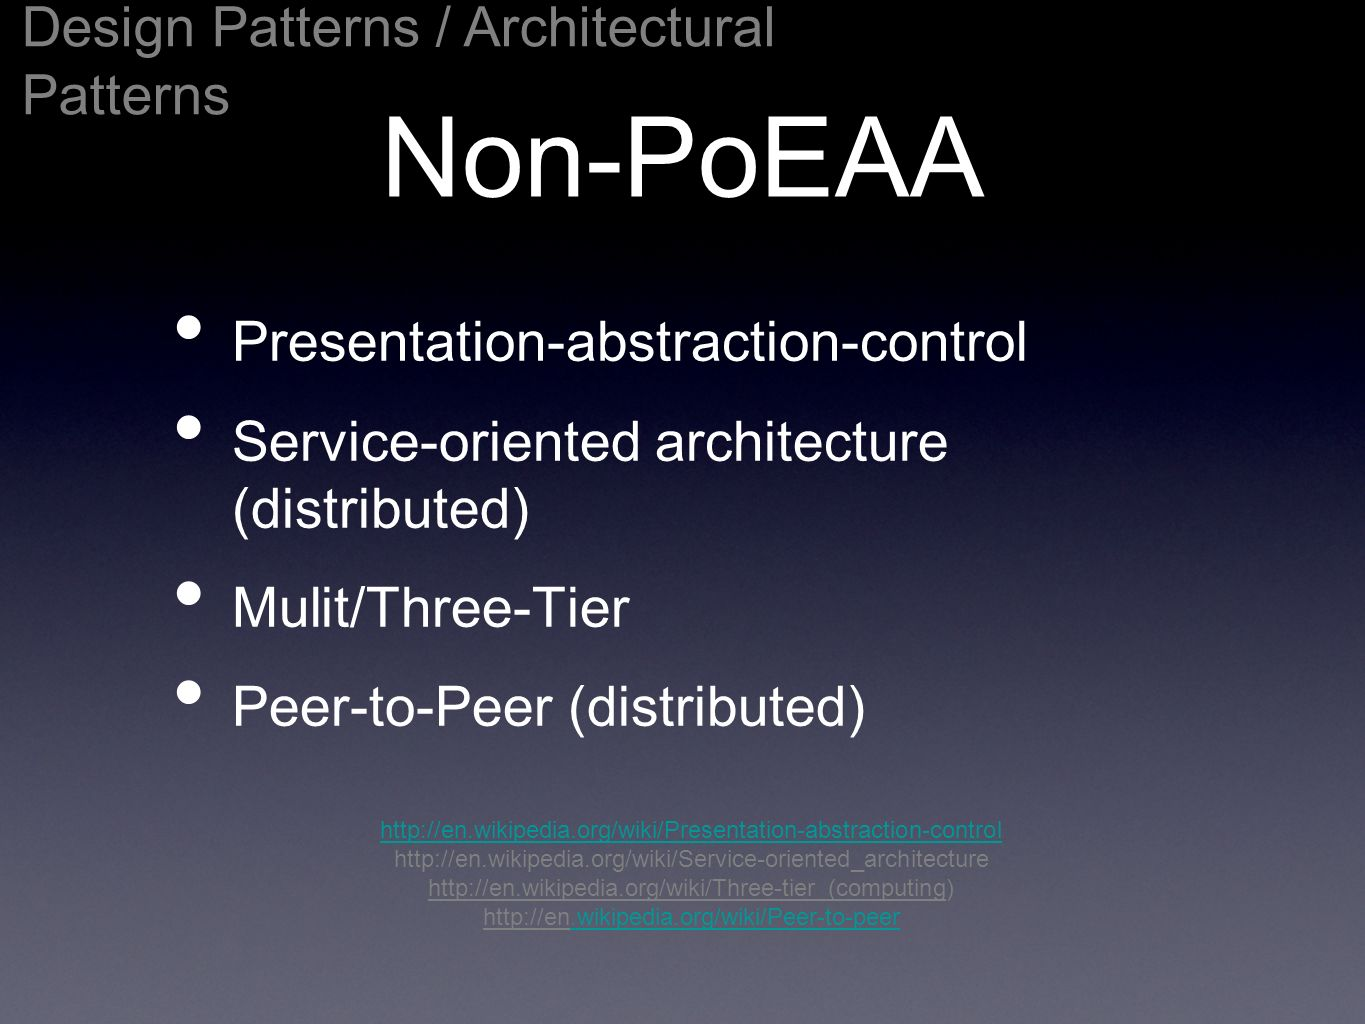 Non-PoEAA Presentation-abstraction-control Service-oriented architecture (distributed) Mulit/Three-Tier Peer-to-Peer (distributed) Design Patterns / Architectural Patterns http://en.wikipedia.org/wiki/Presentation-abstraction-control http://en.wikipedia.org/wiki/Service-oriented_architecture http://en.wikipedia.org/wiki/Three-tier_(computing) http://en.wikipedia.org/wiki/Peer-to-peer.wikipedia.org/wiki/Peer-to-peer